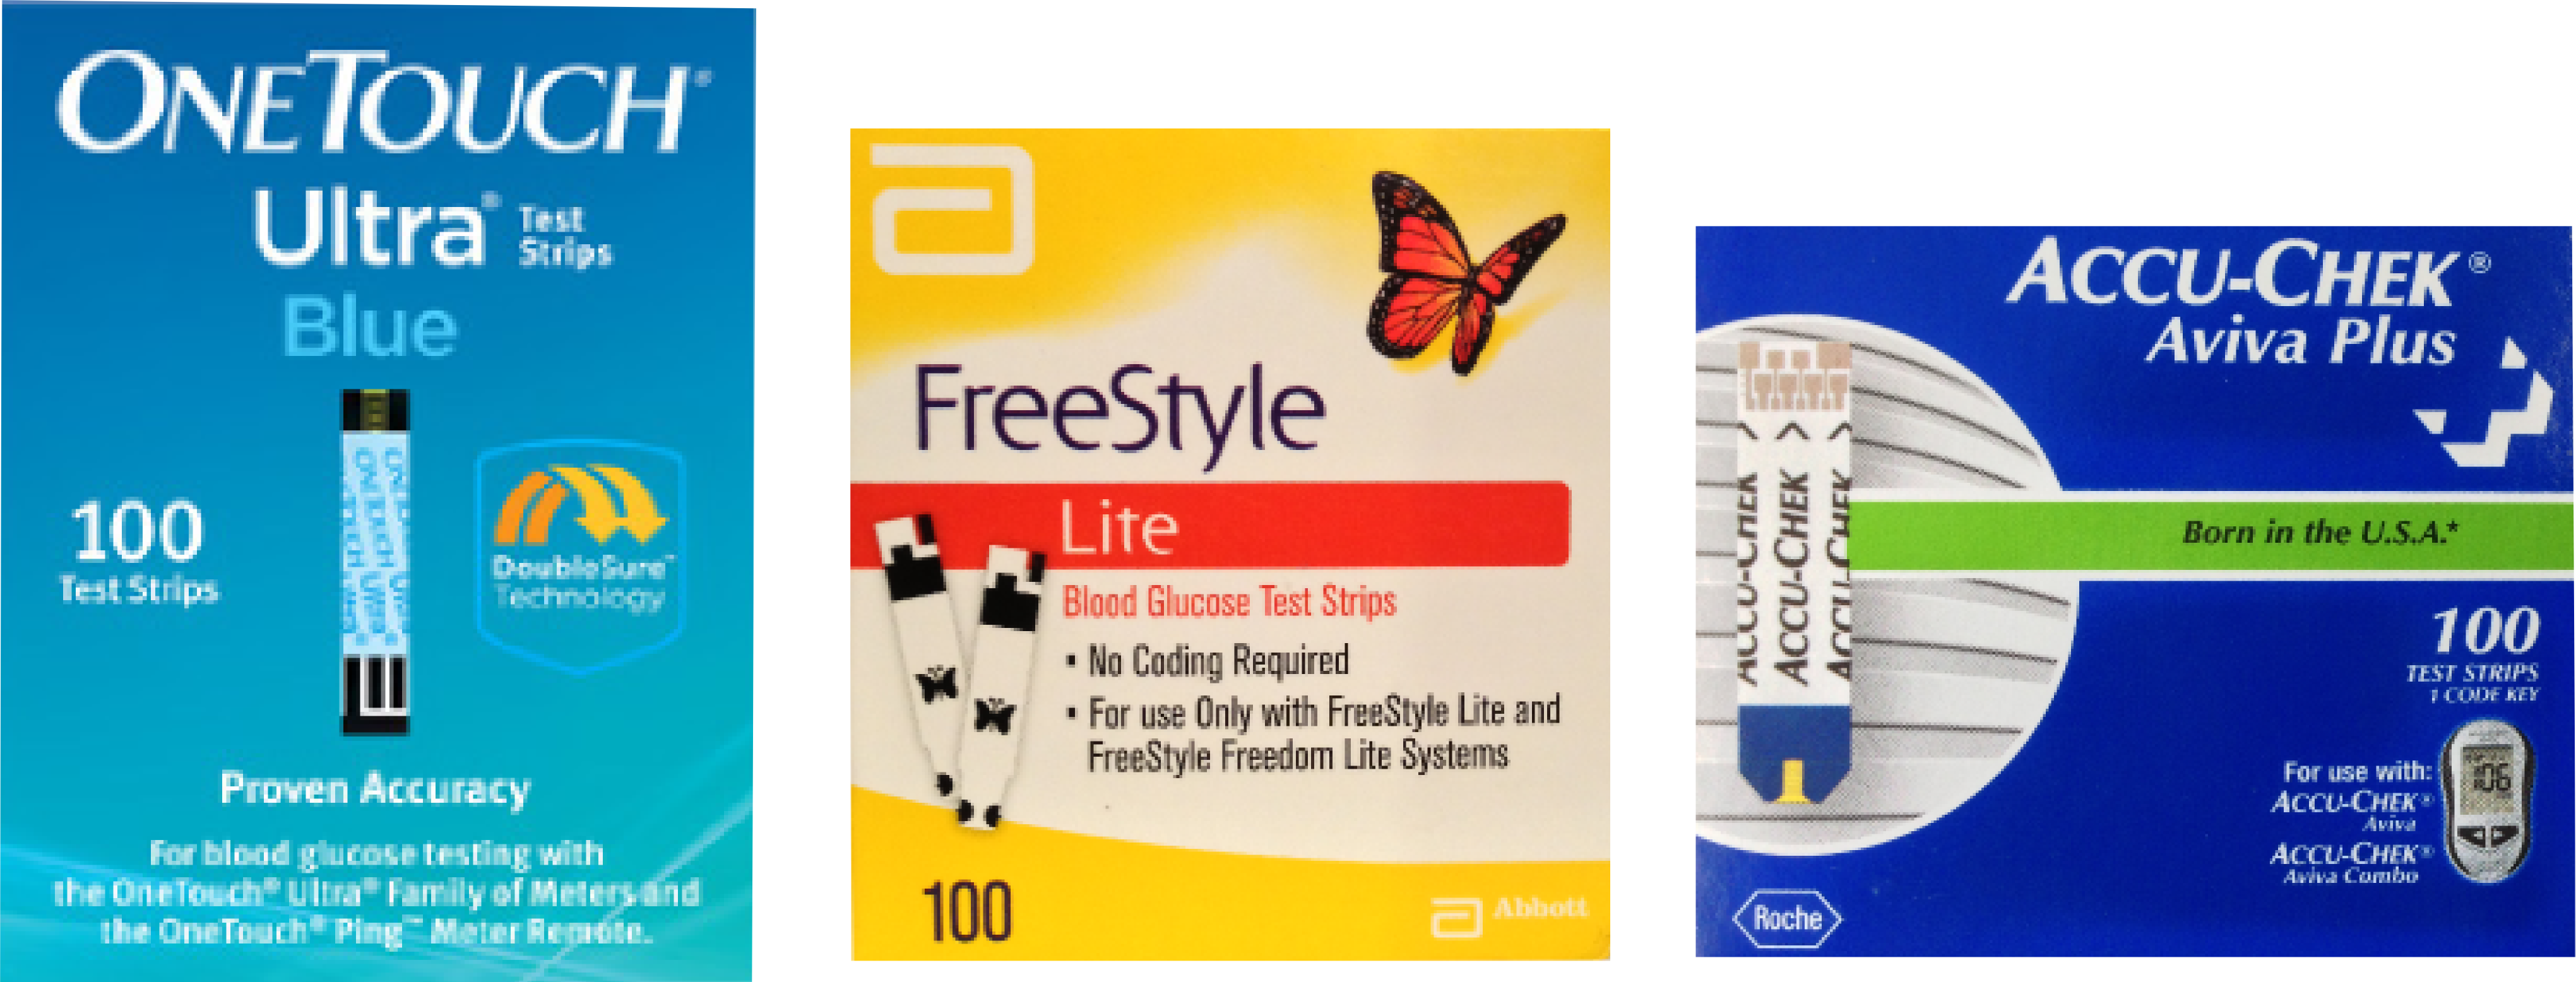 how to get free diabetes test strips